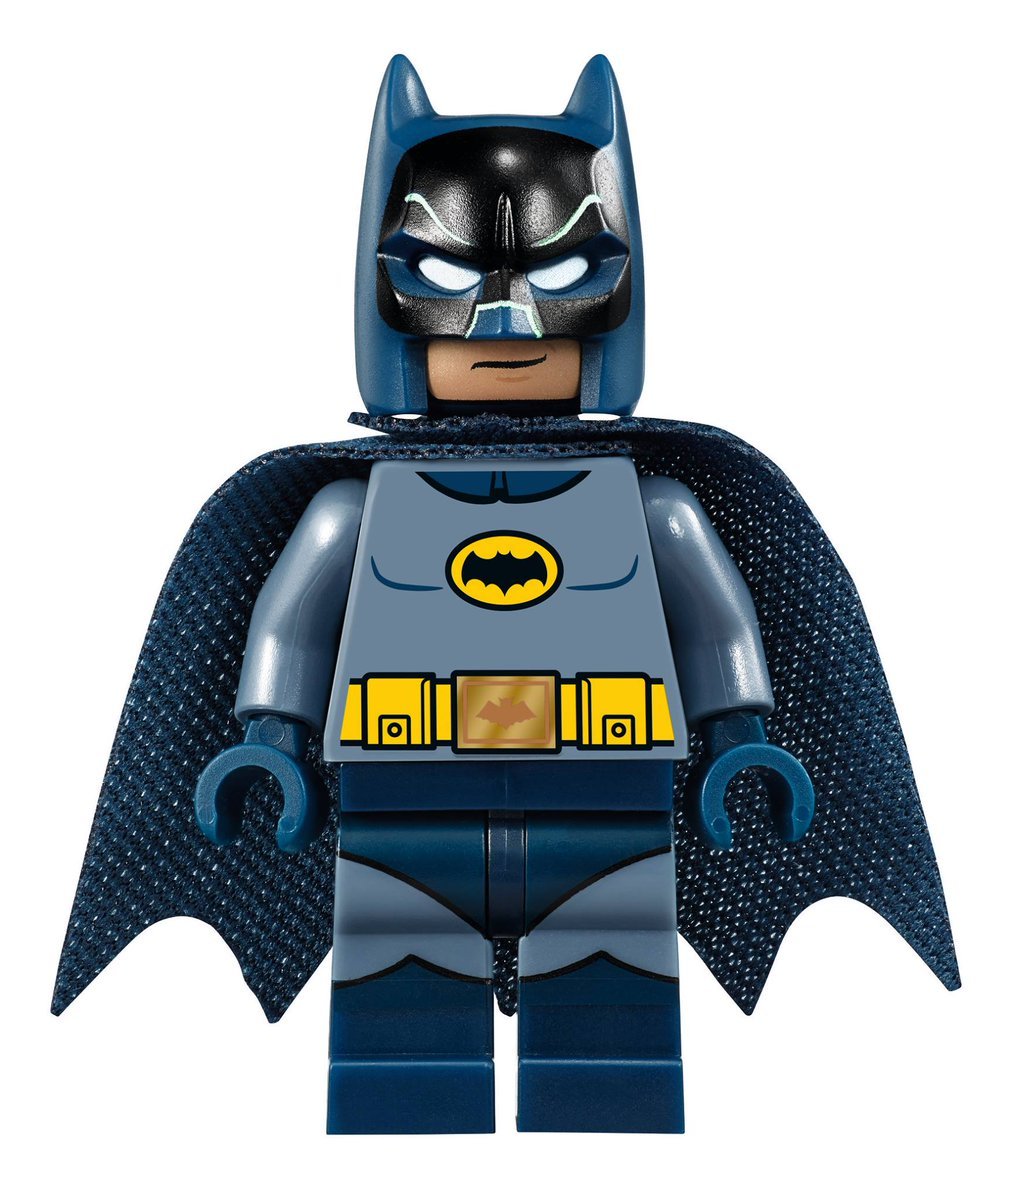 LEGO On Twitter The Bright Knight A Hero To All Adam West 1928 2017 Tco Omvn6ddWjz